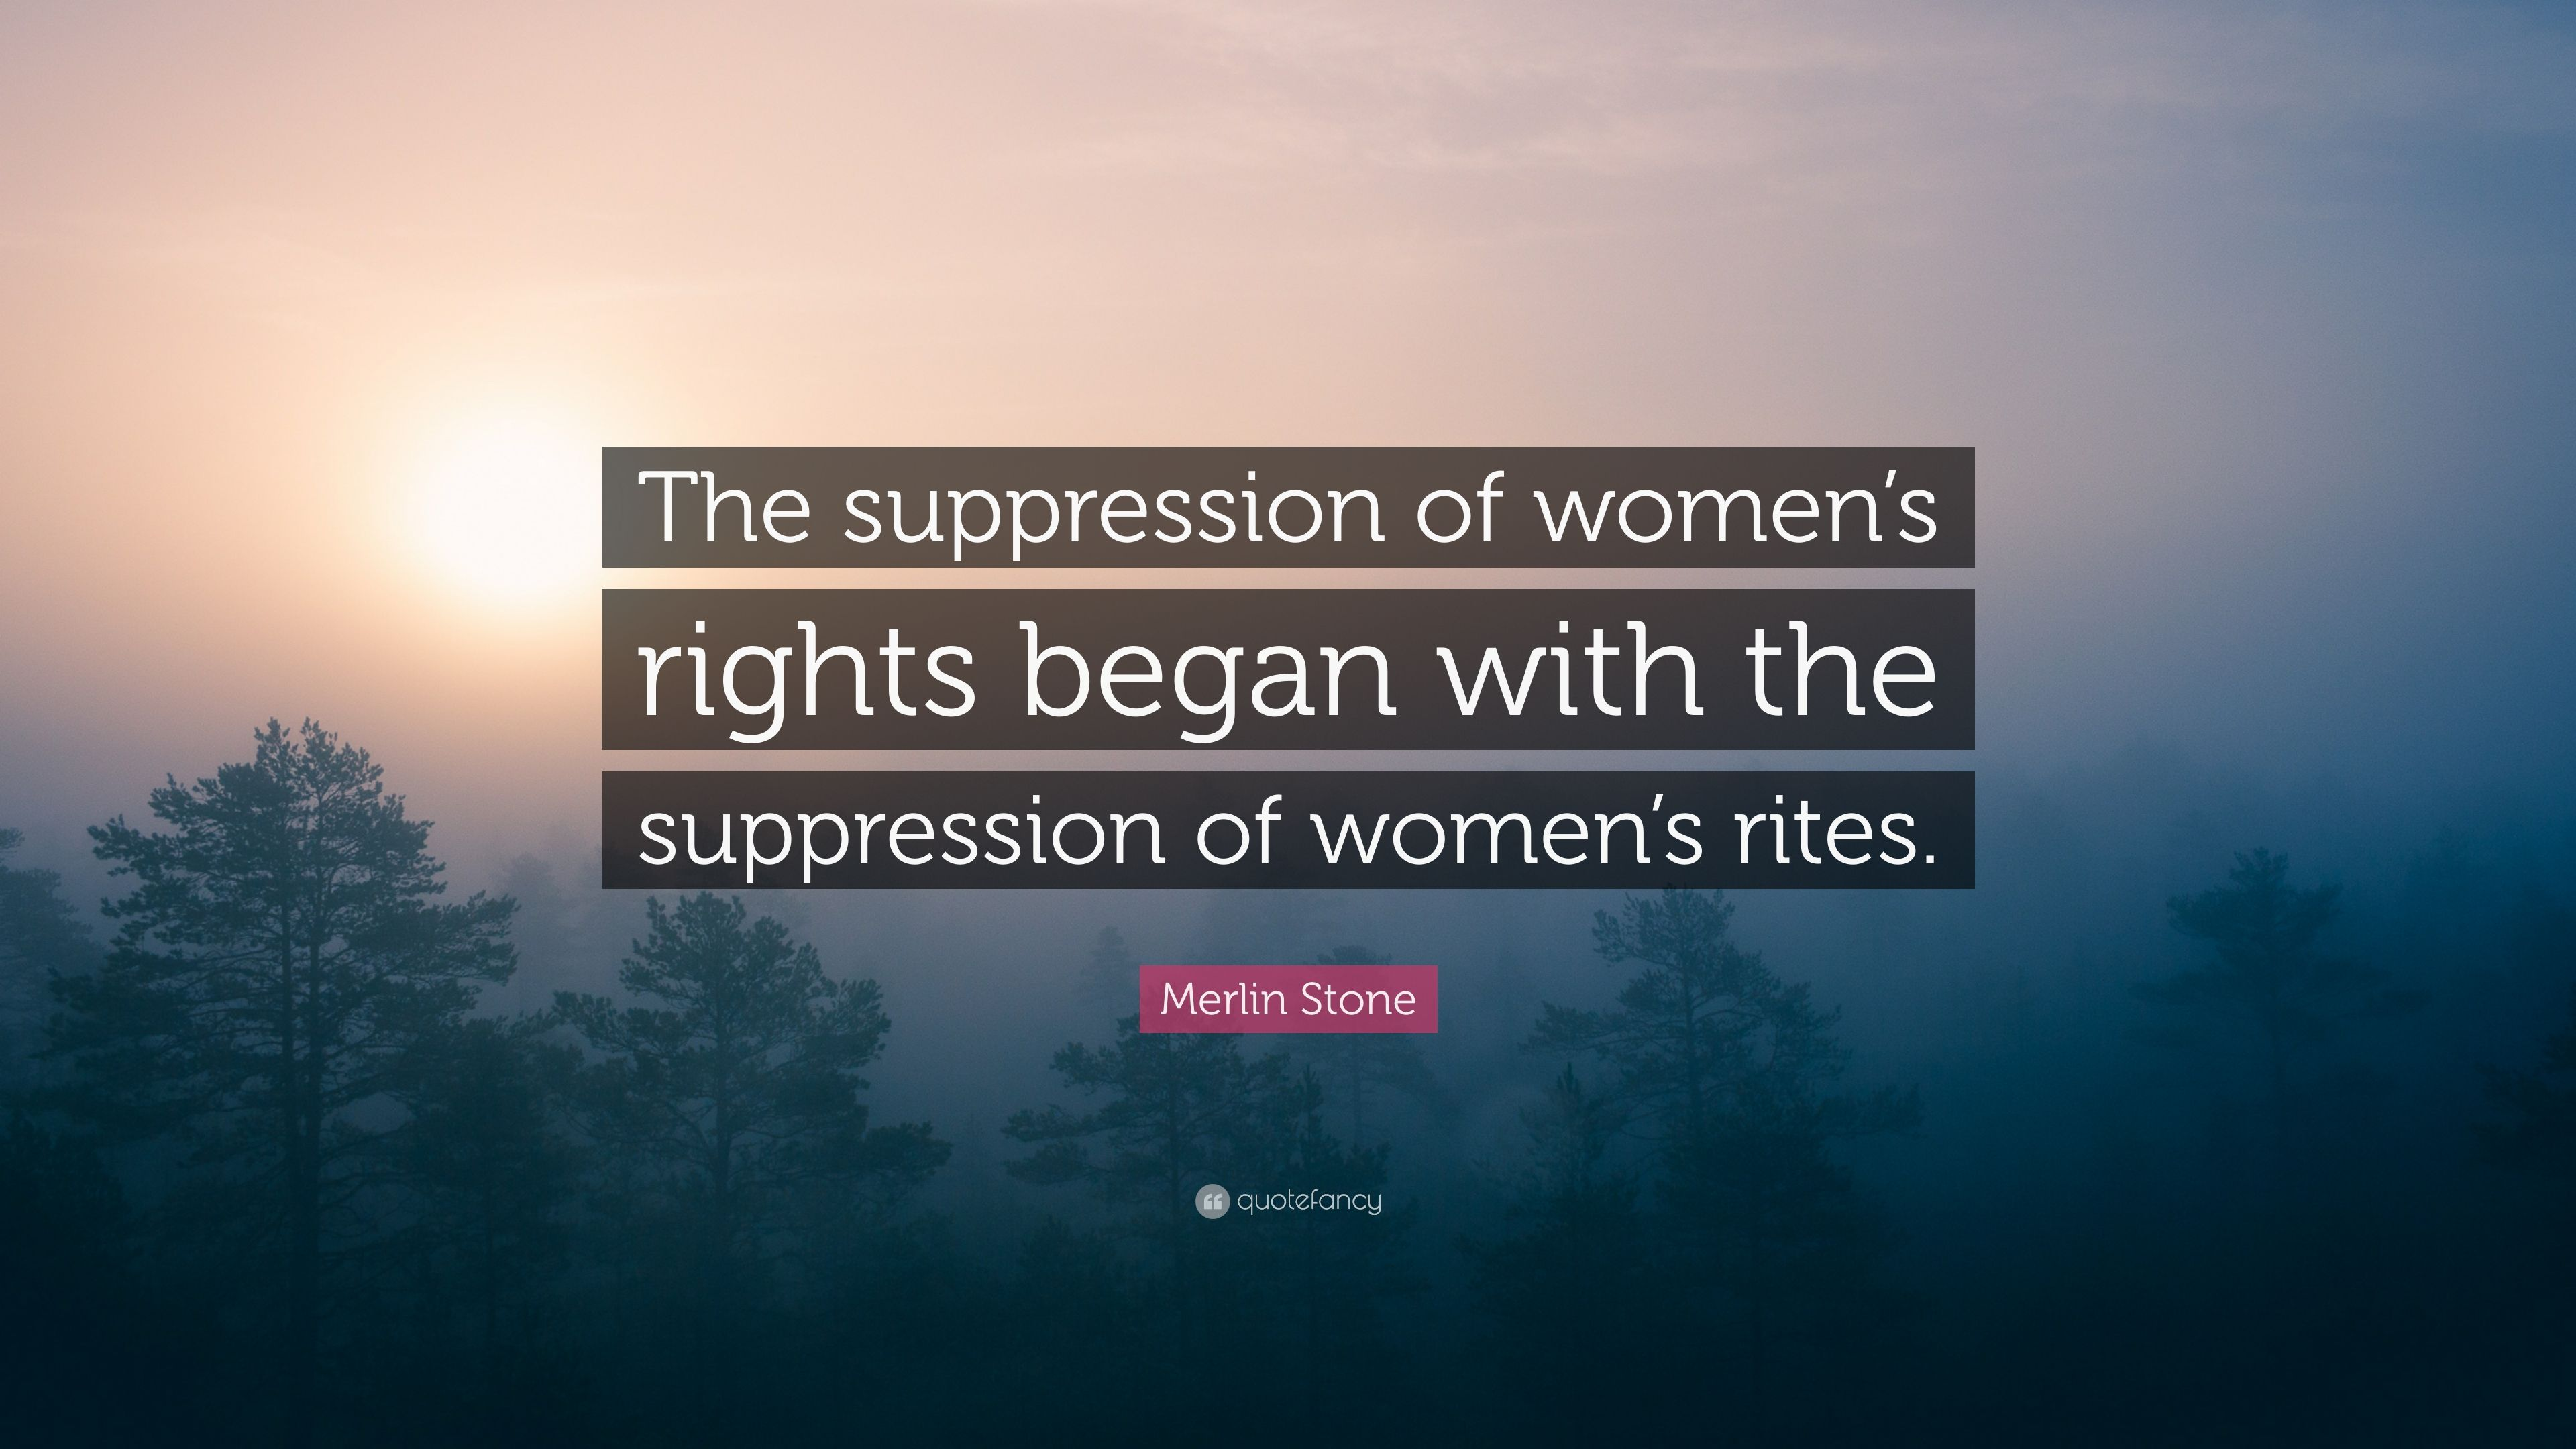 the suppression of women in the The suppression of women in pygmalion essays: over 180,000 the suppression of women in pygmalion essays, the suppression of women in pygmalion term papers, the suppression of women in pygmalion research paper, book reports 184 990 essays, term and research papers available for unlimited access.